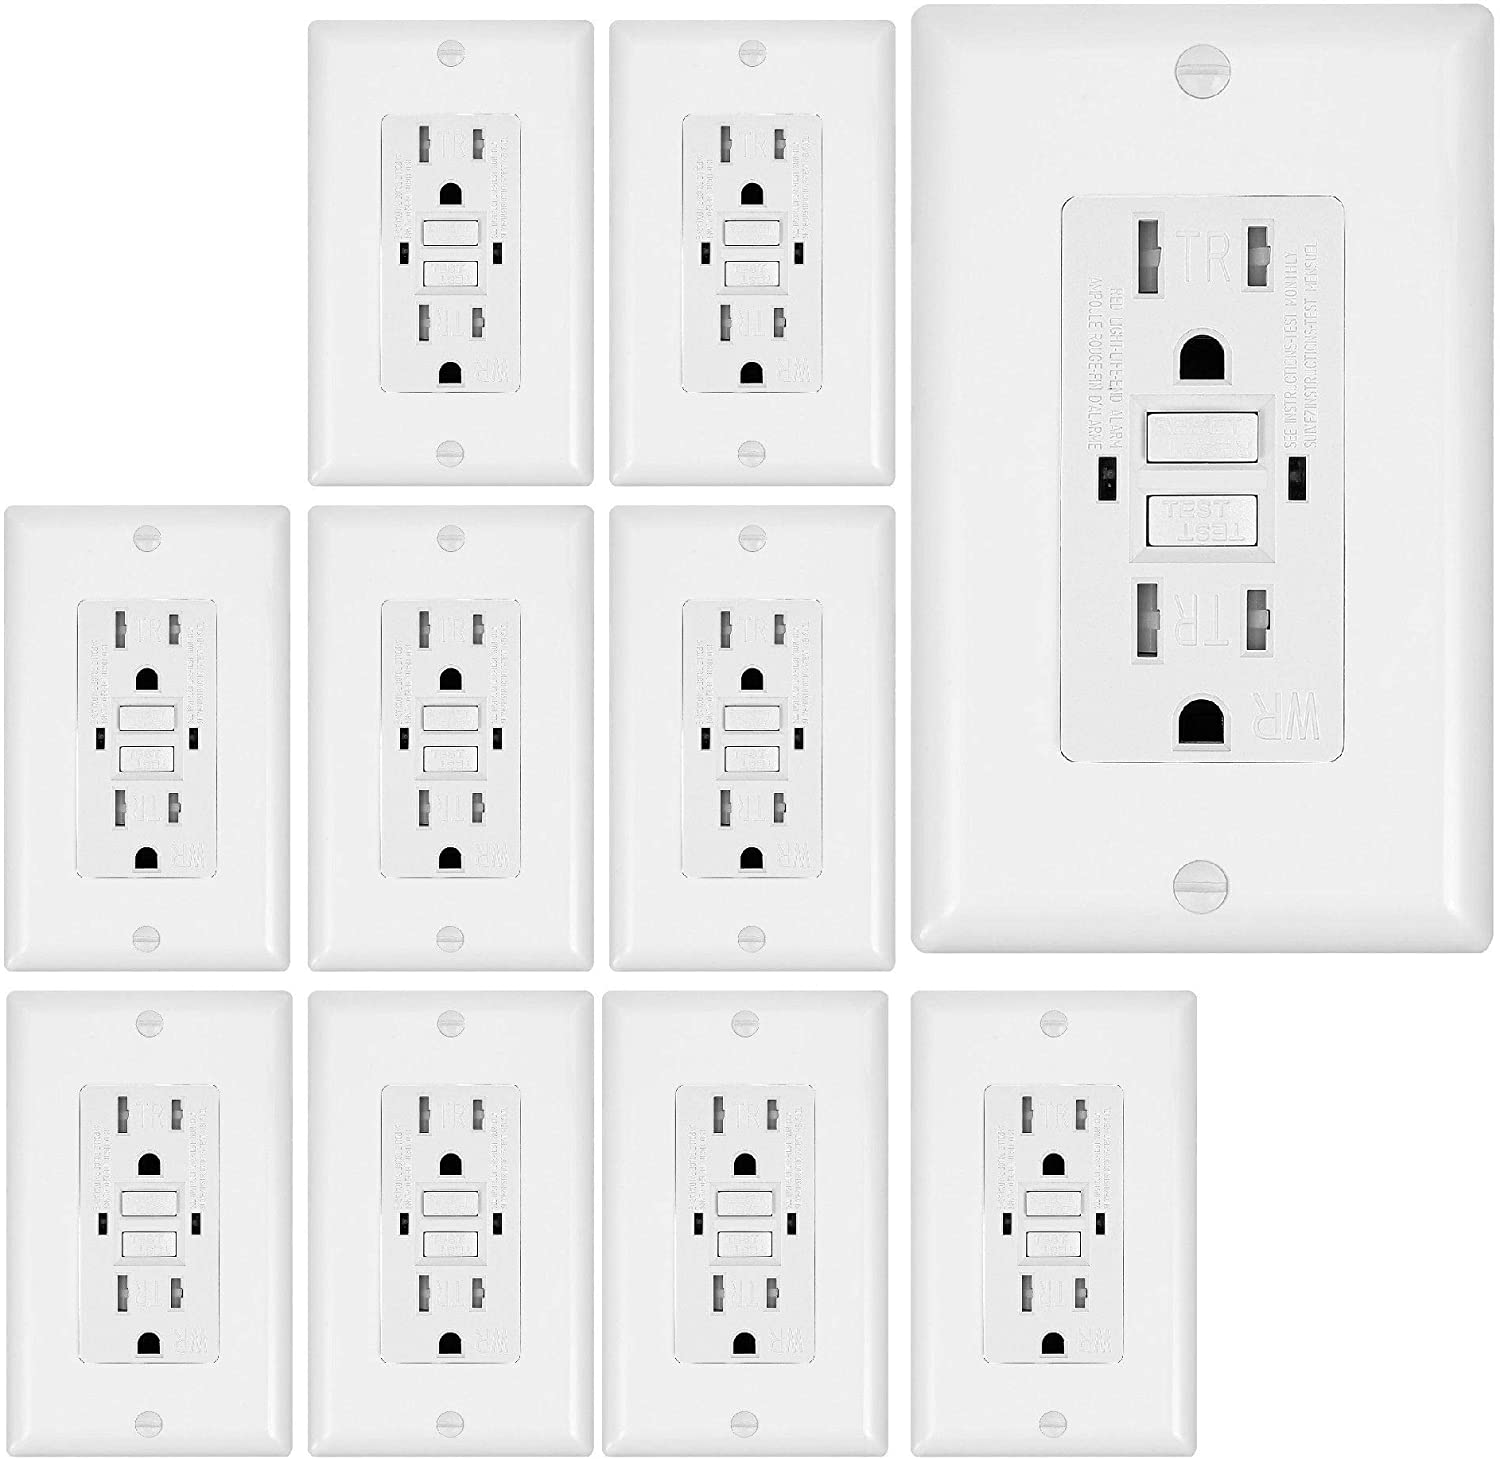 10 Pack - GFCI Duplex Outlet Receptacle - Tamper Resistant & Weather Resistant 15-Amp/125-Volt, Self-Test Function with LED Indicator - UL Listed, cUL Listed - Wall Plate and Screws Included, White